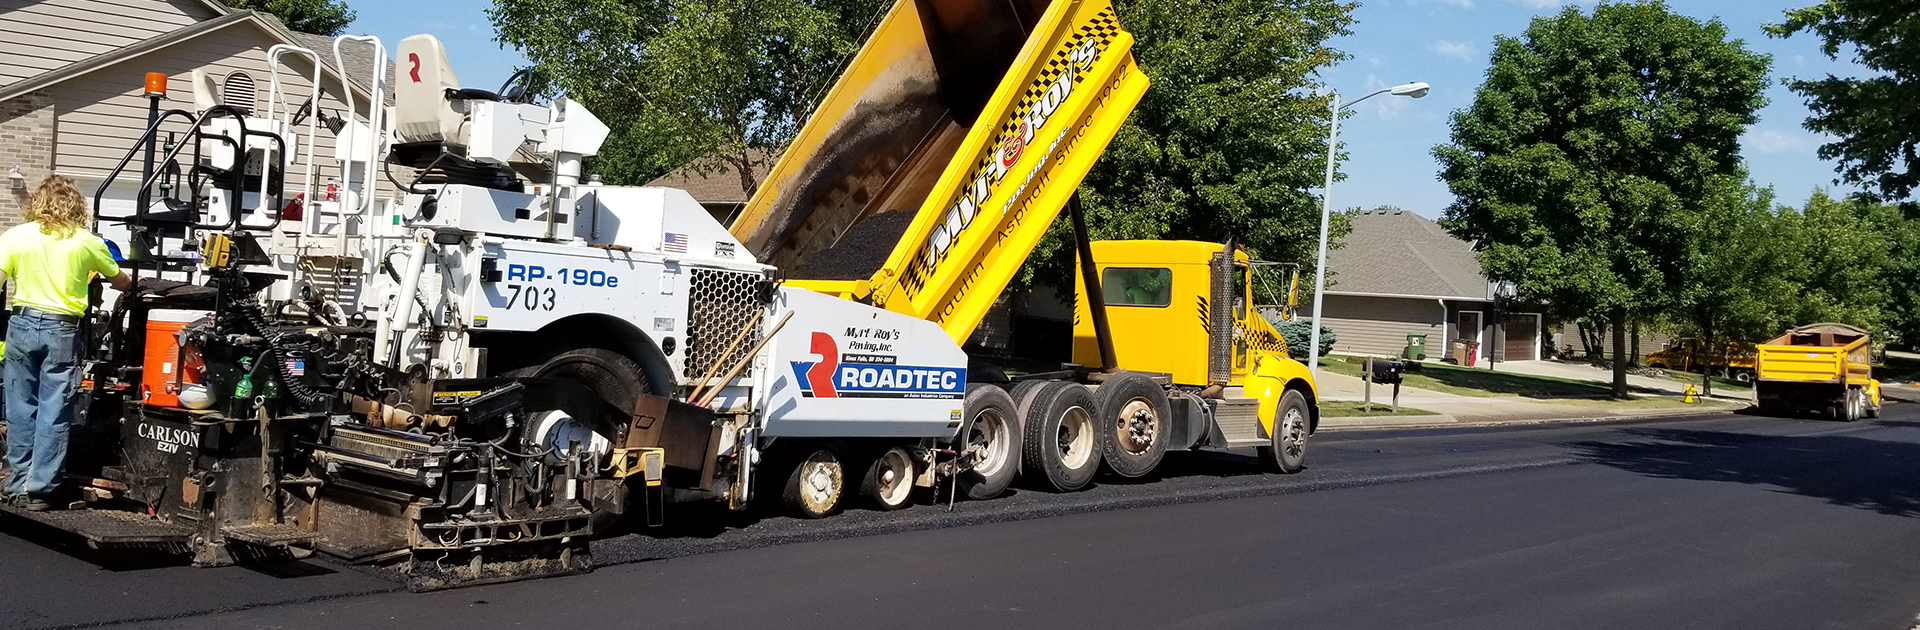 Laying asphalt